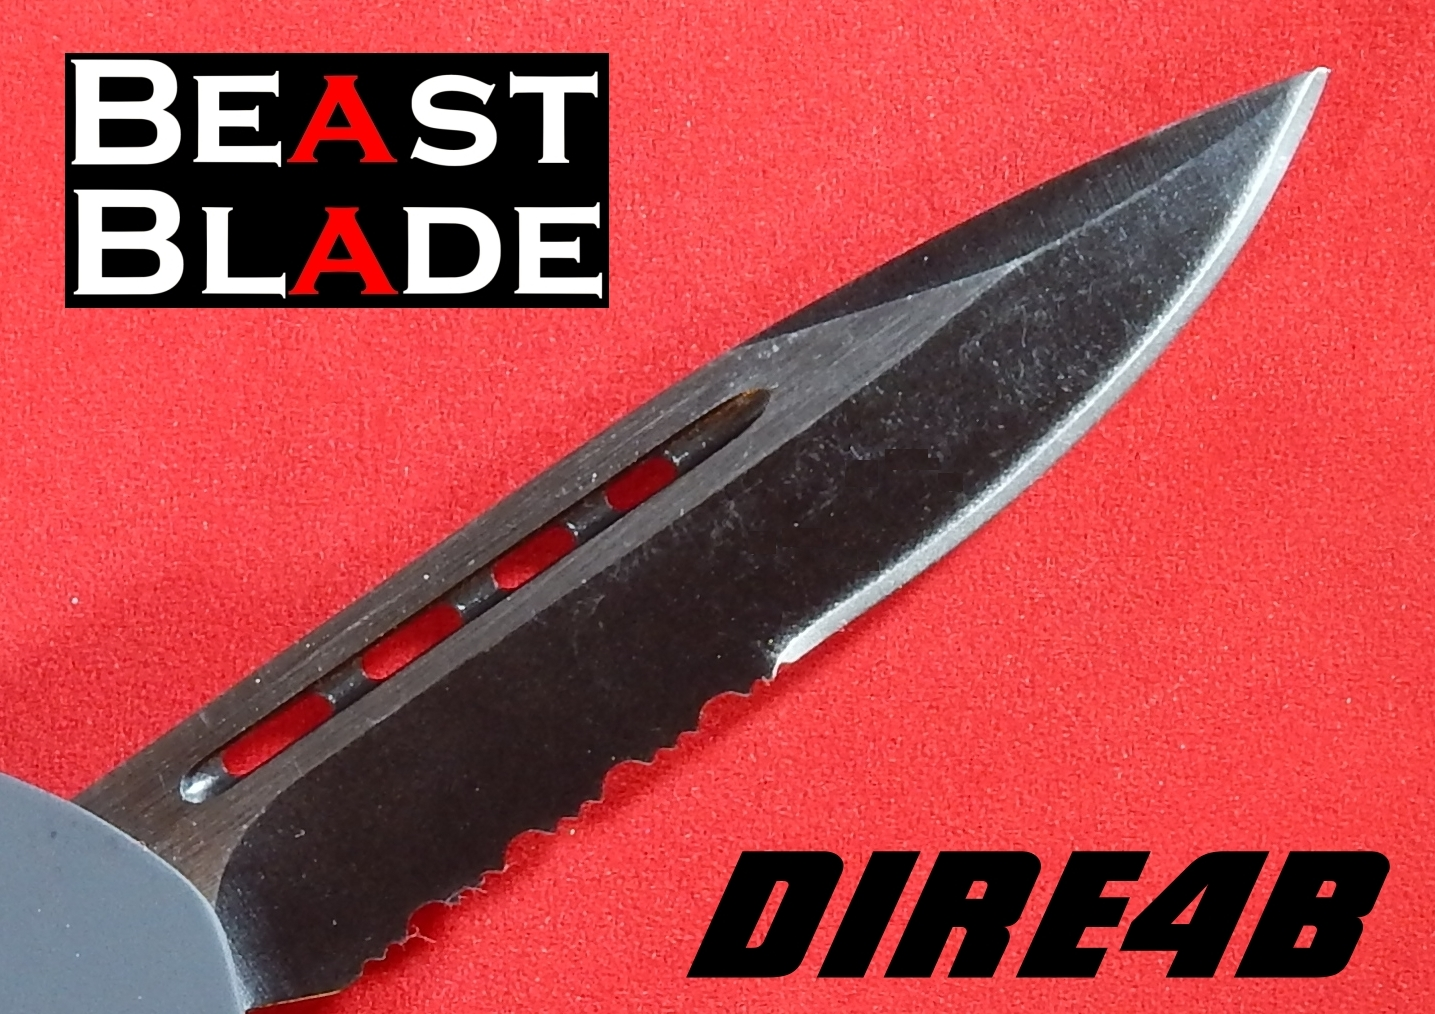 7 Inch Drop Point, Single Edge, Partially Serrated